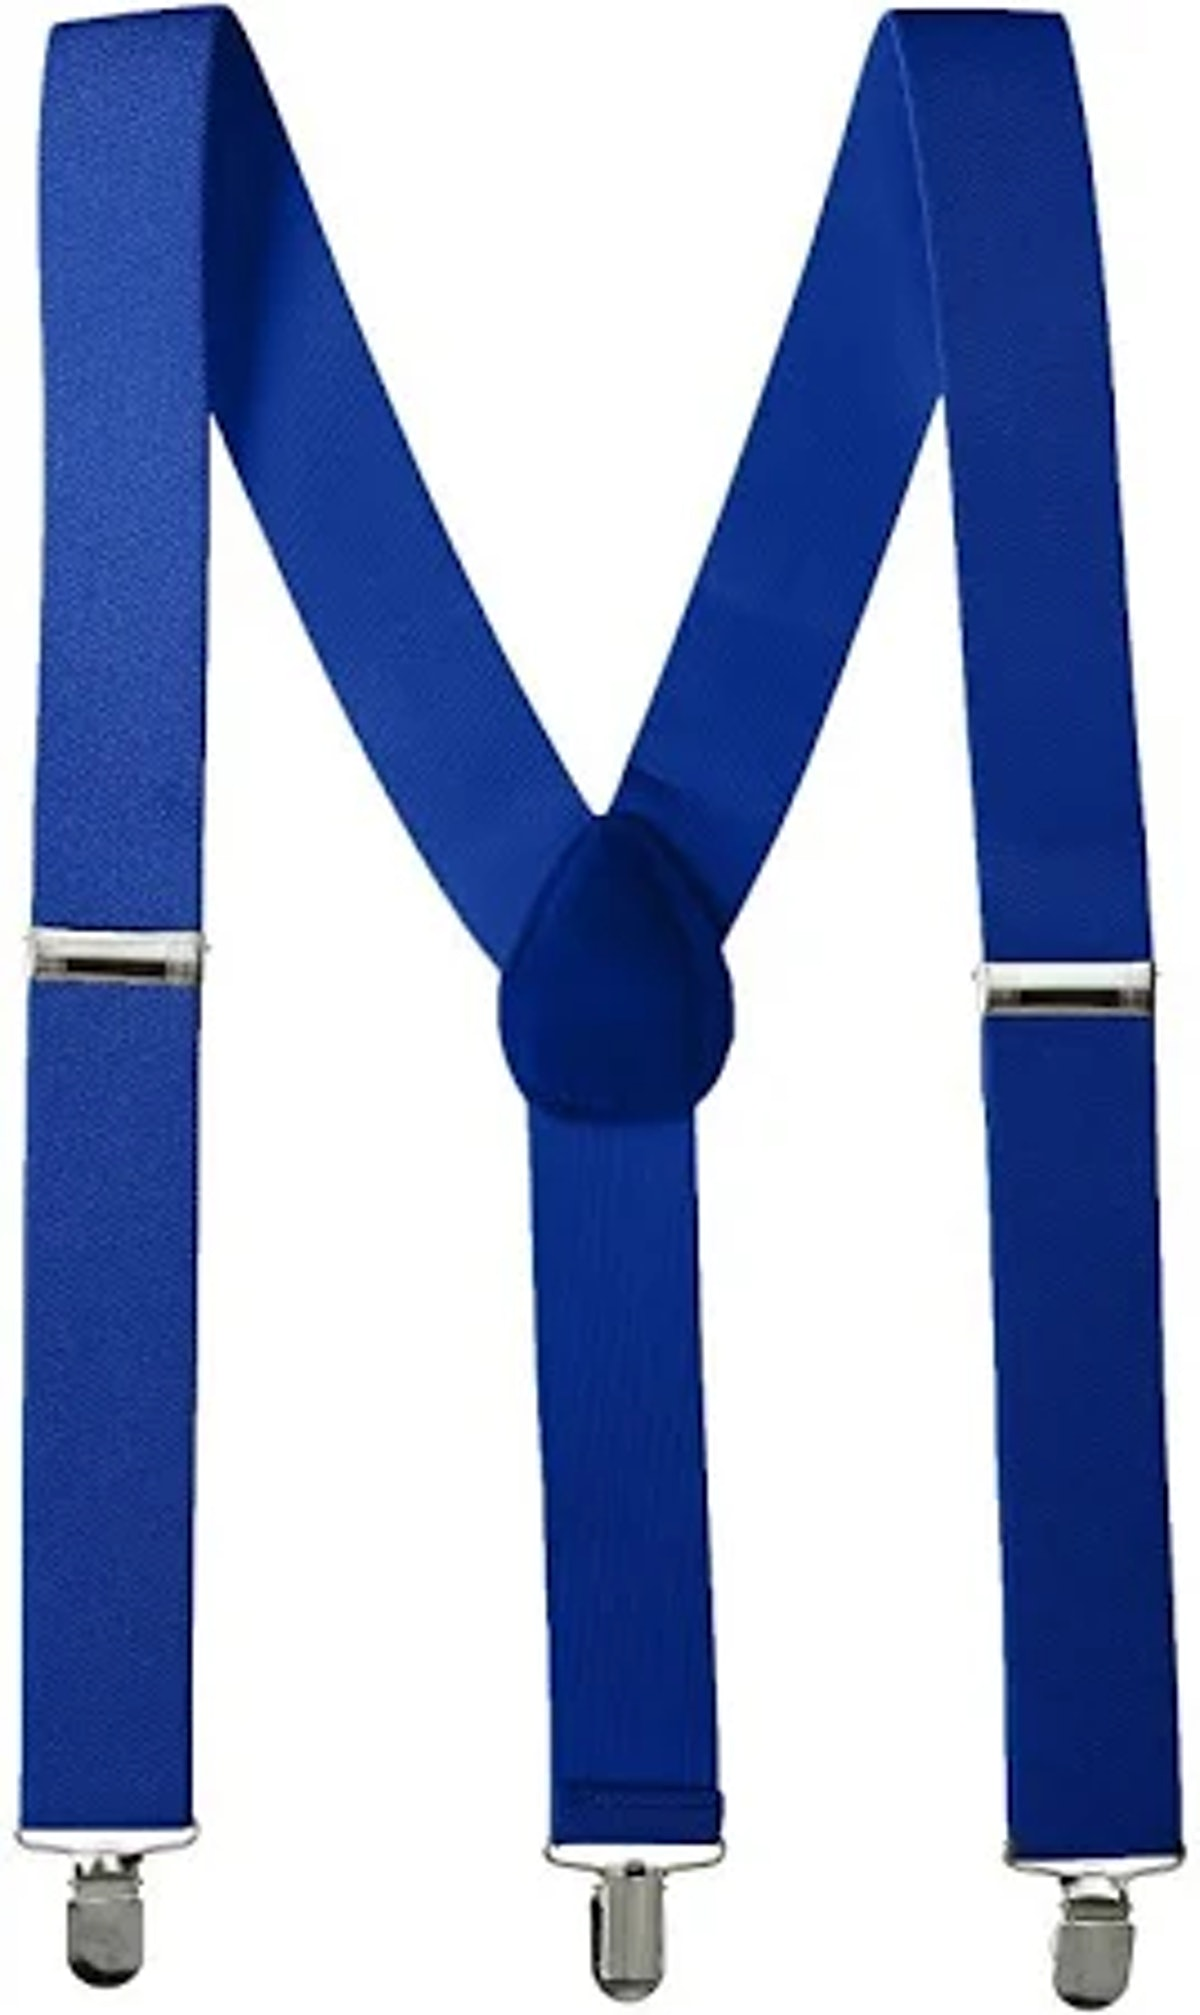 Amscan Suspenders, Party Accessory, Blue